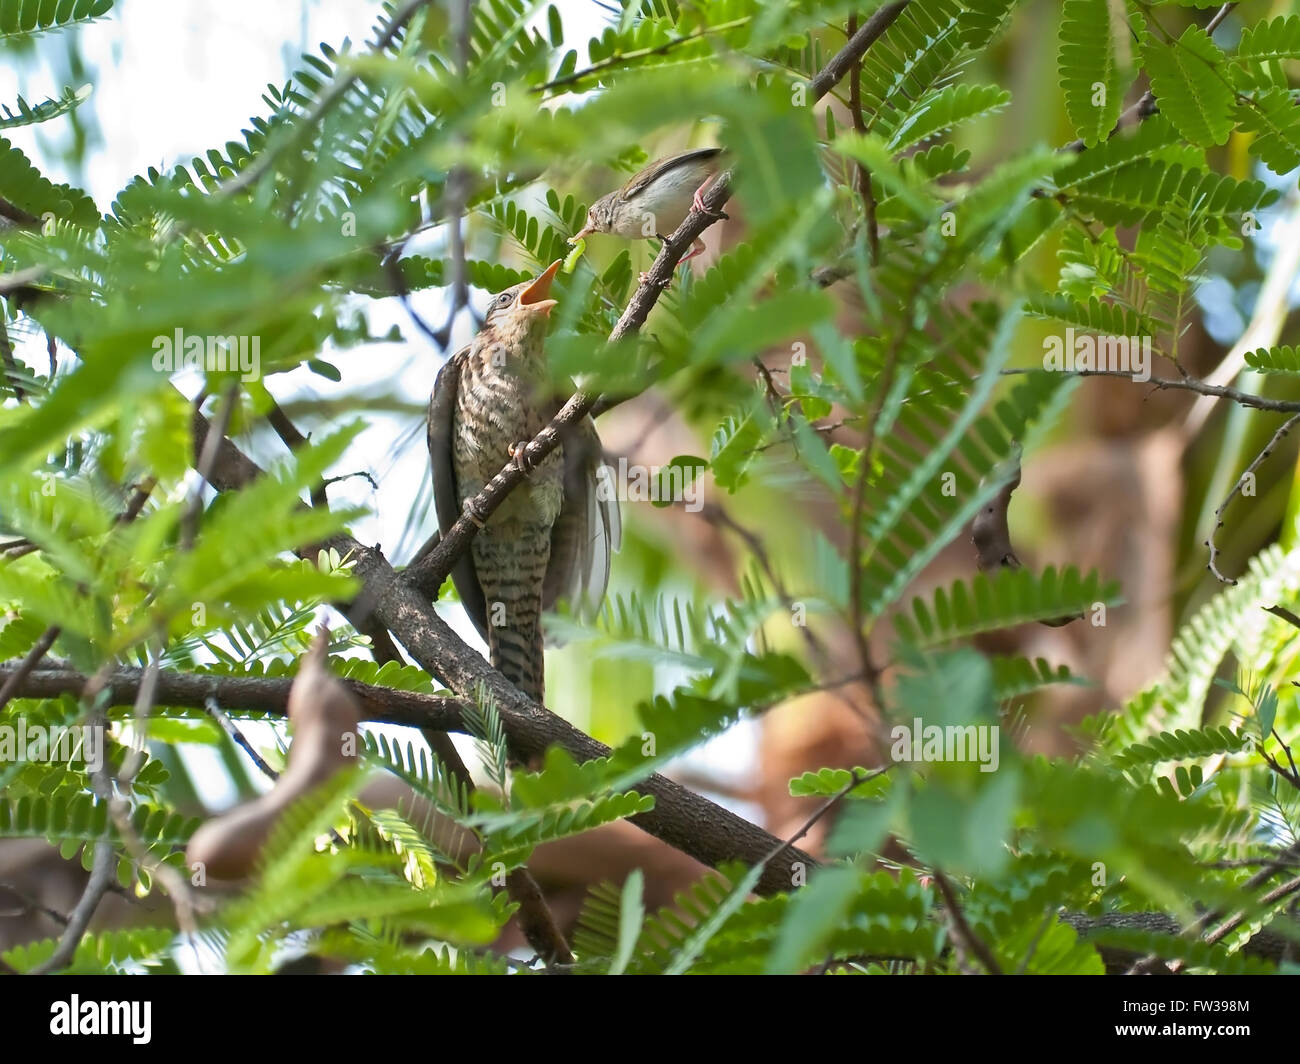 Common Tailorbird feeding Female Asian Koel like stepmother - Stock Image